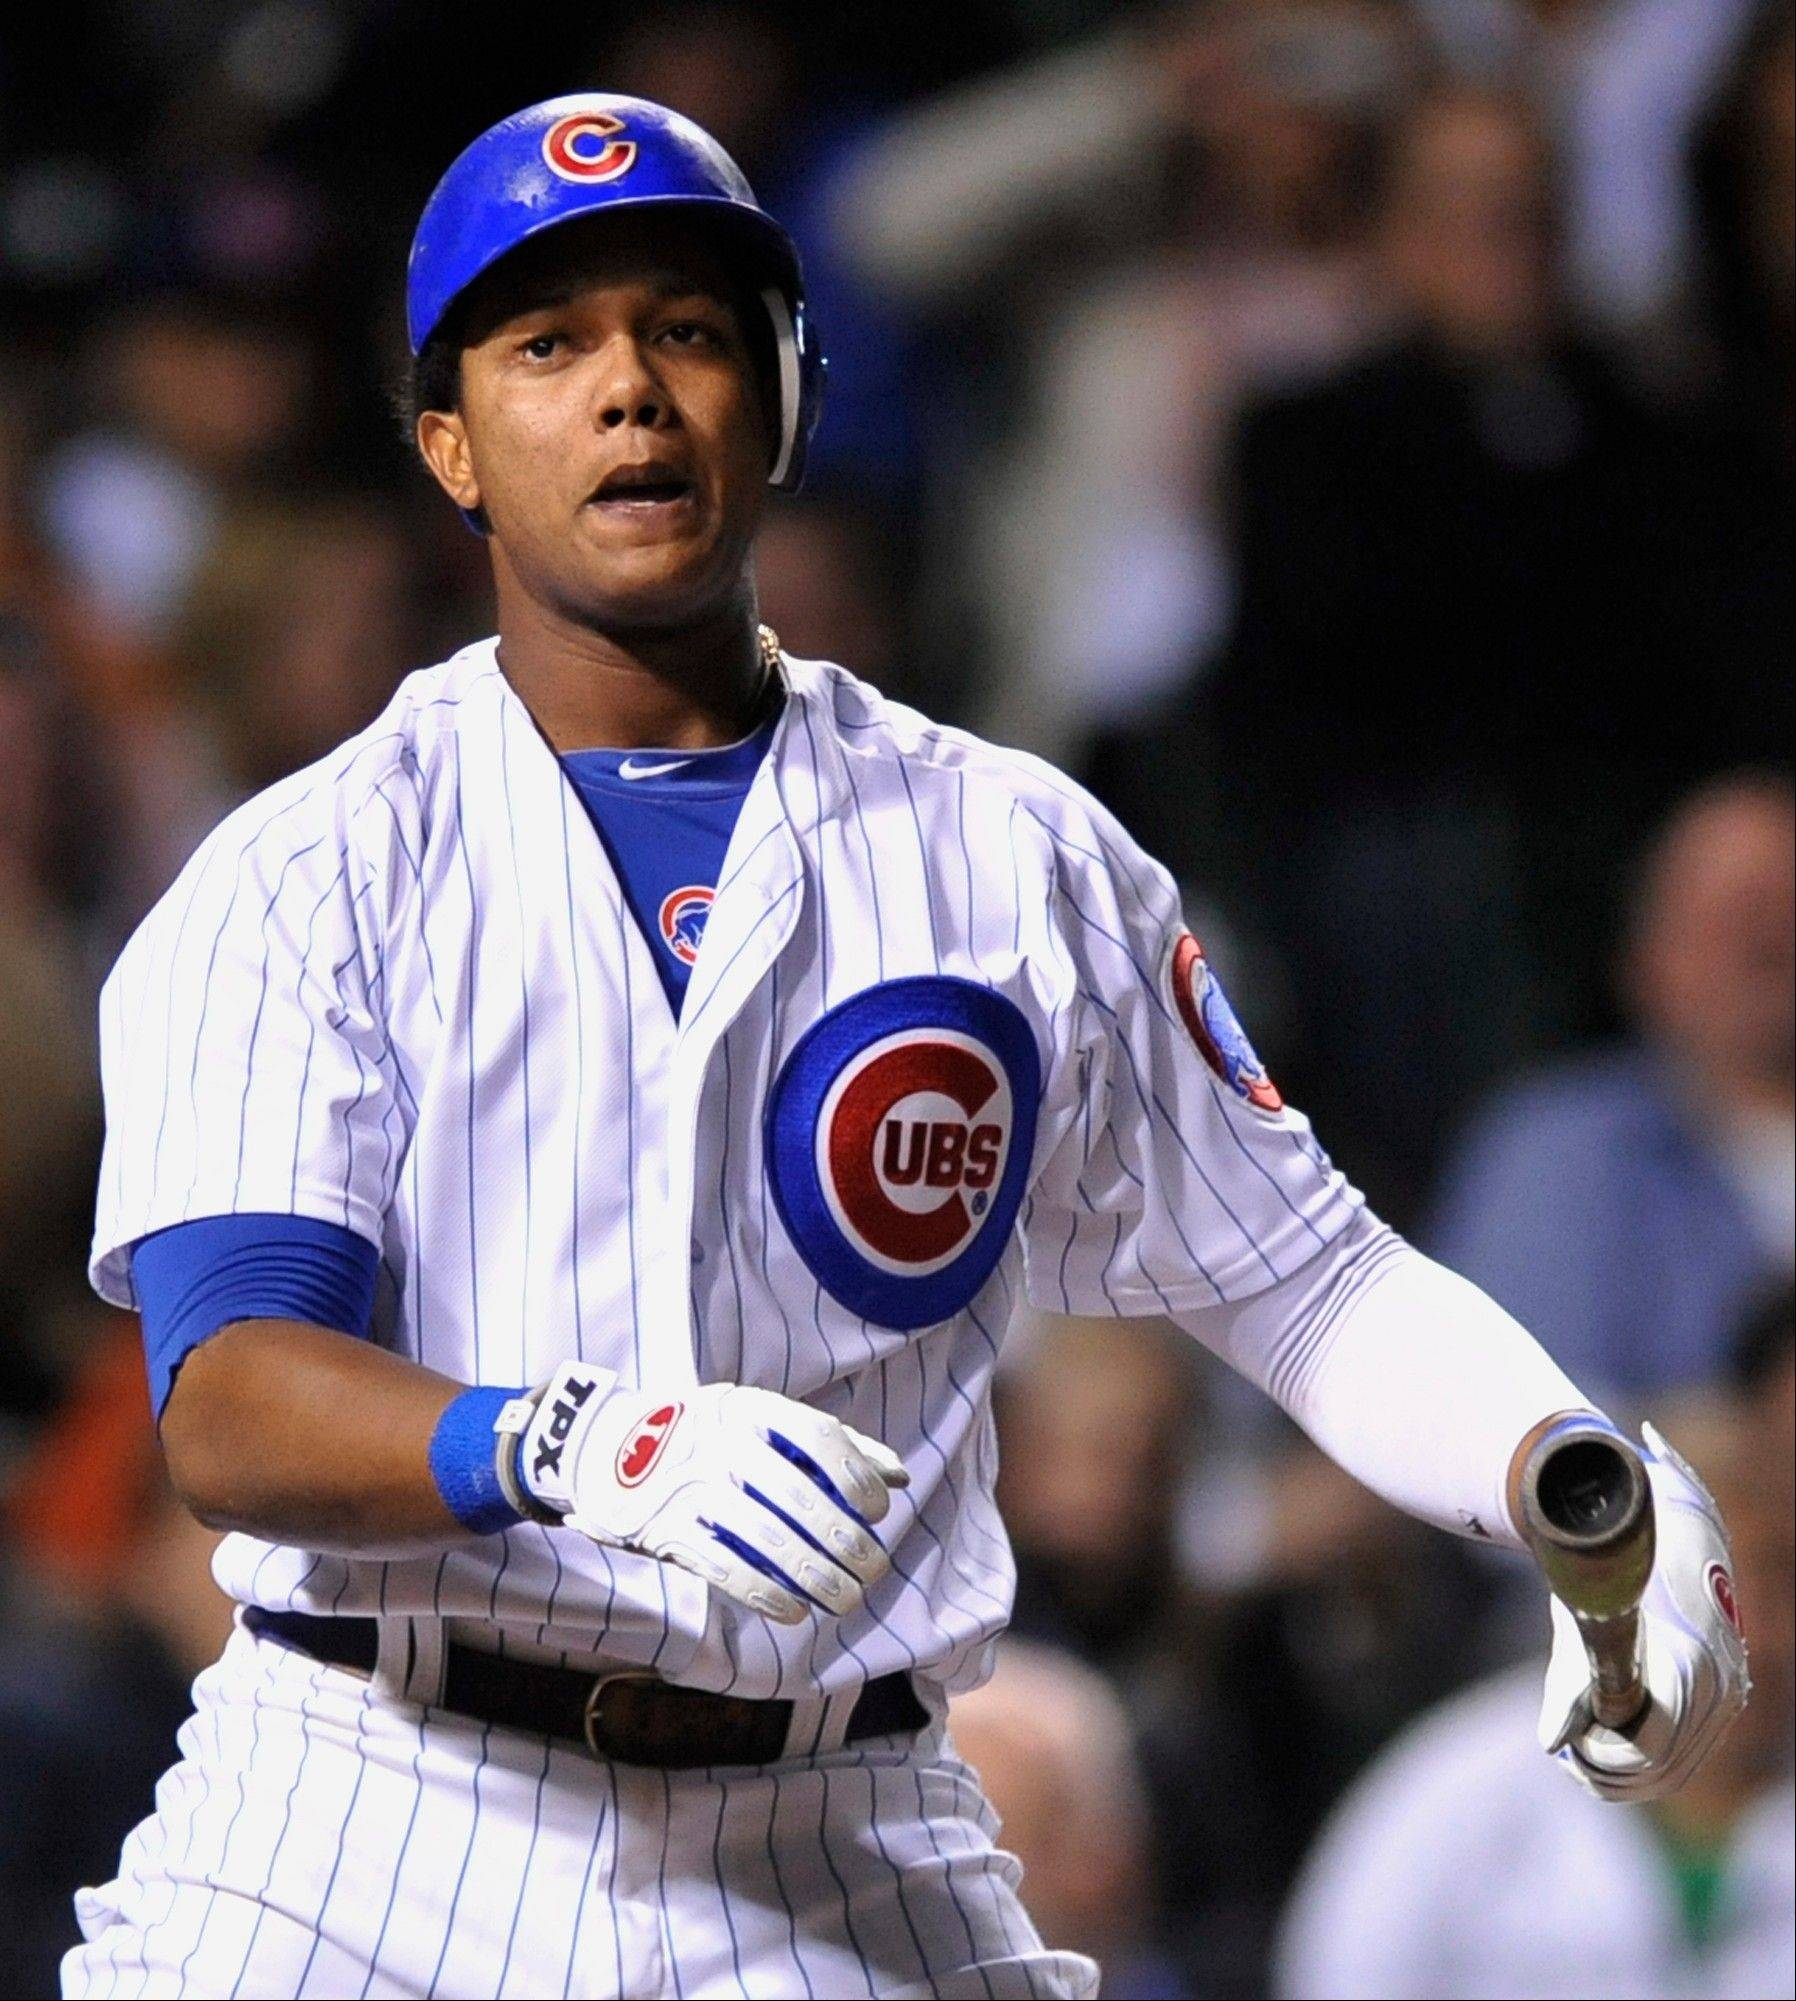 Starlin Castro reacts to striking out in the fourth inning during a baseball game against the Houston Astros in Chicago, Monday, Oct. 1, 2012.